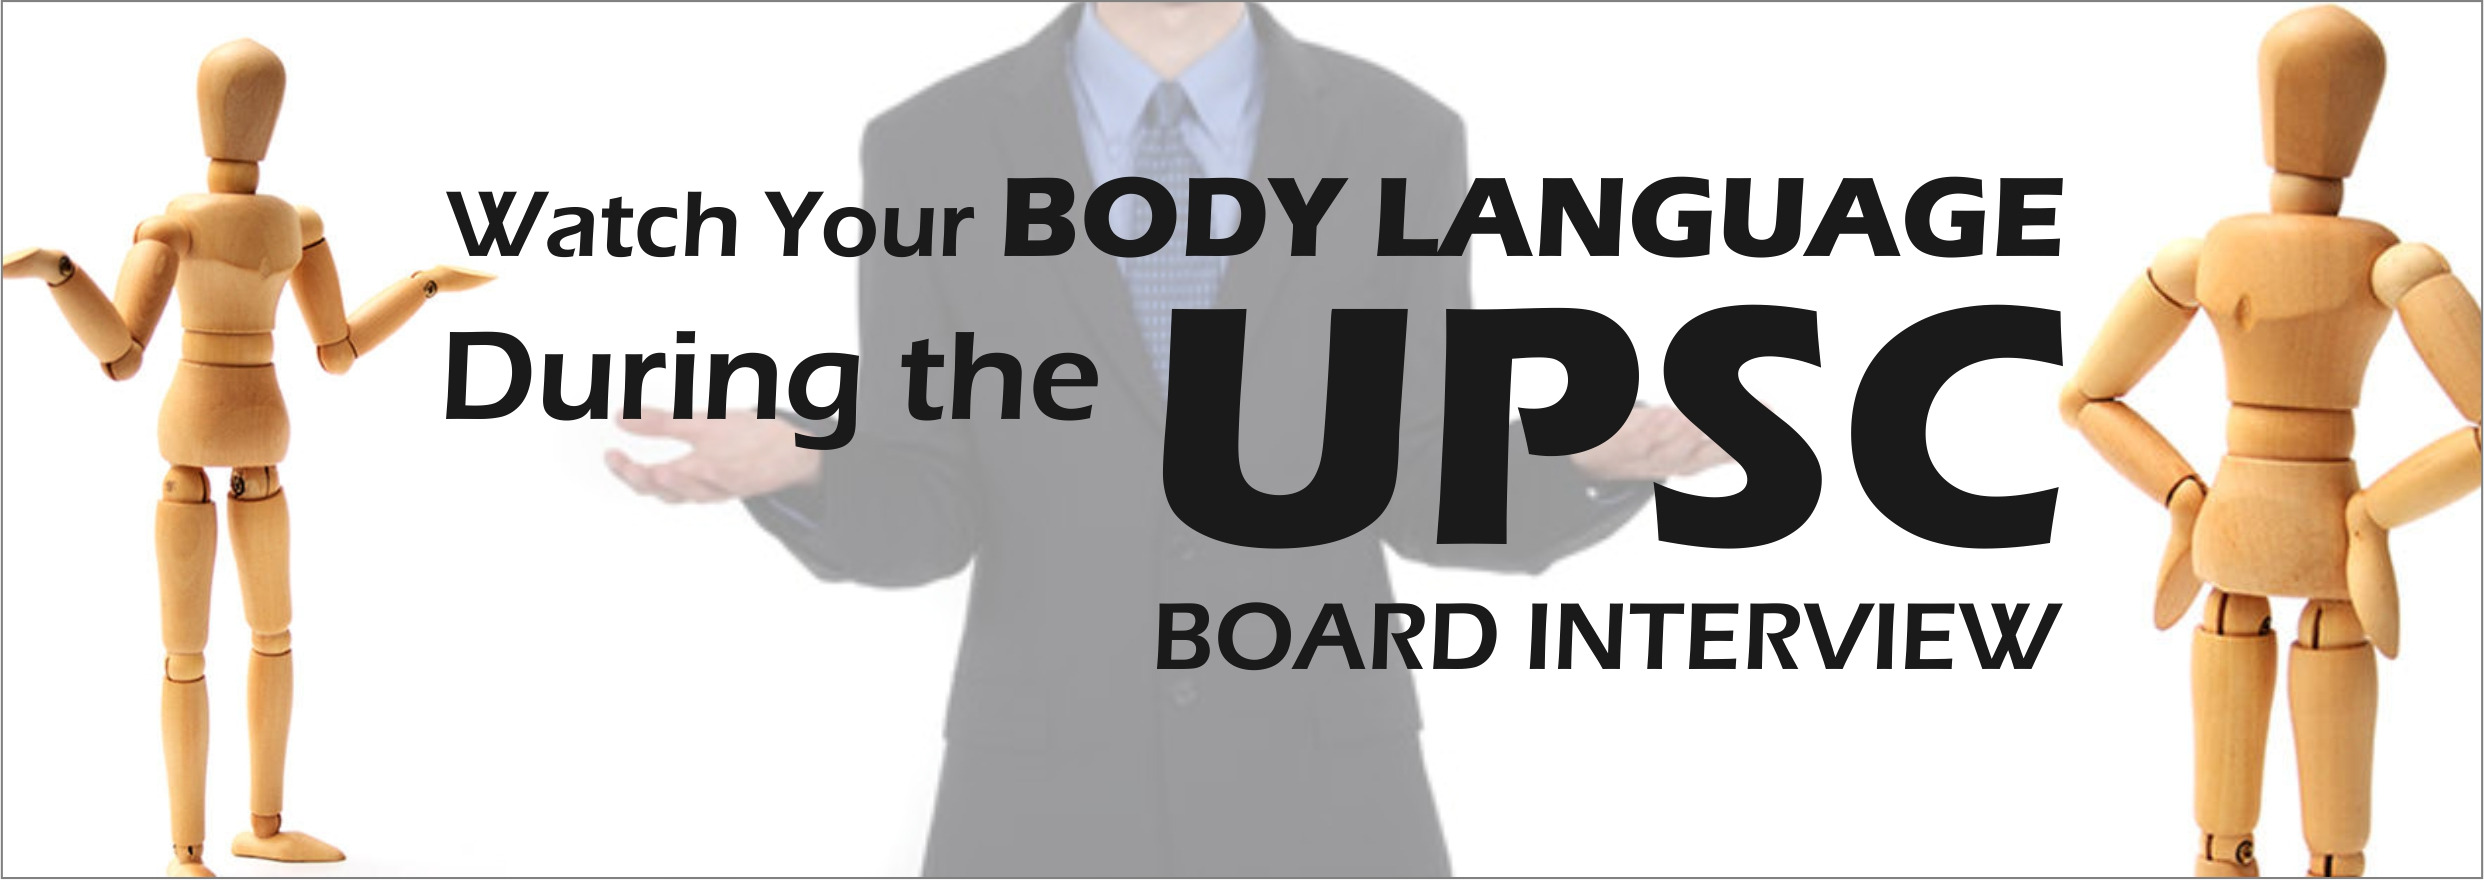 UPSC Board Interview